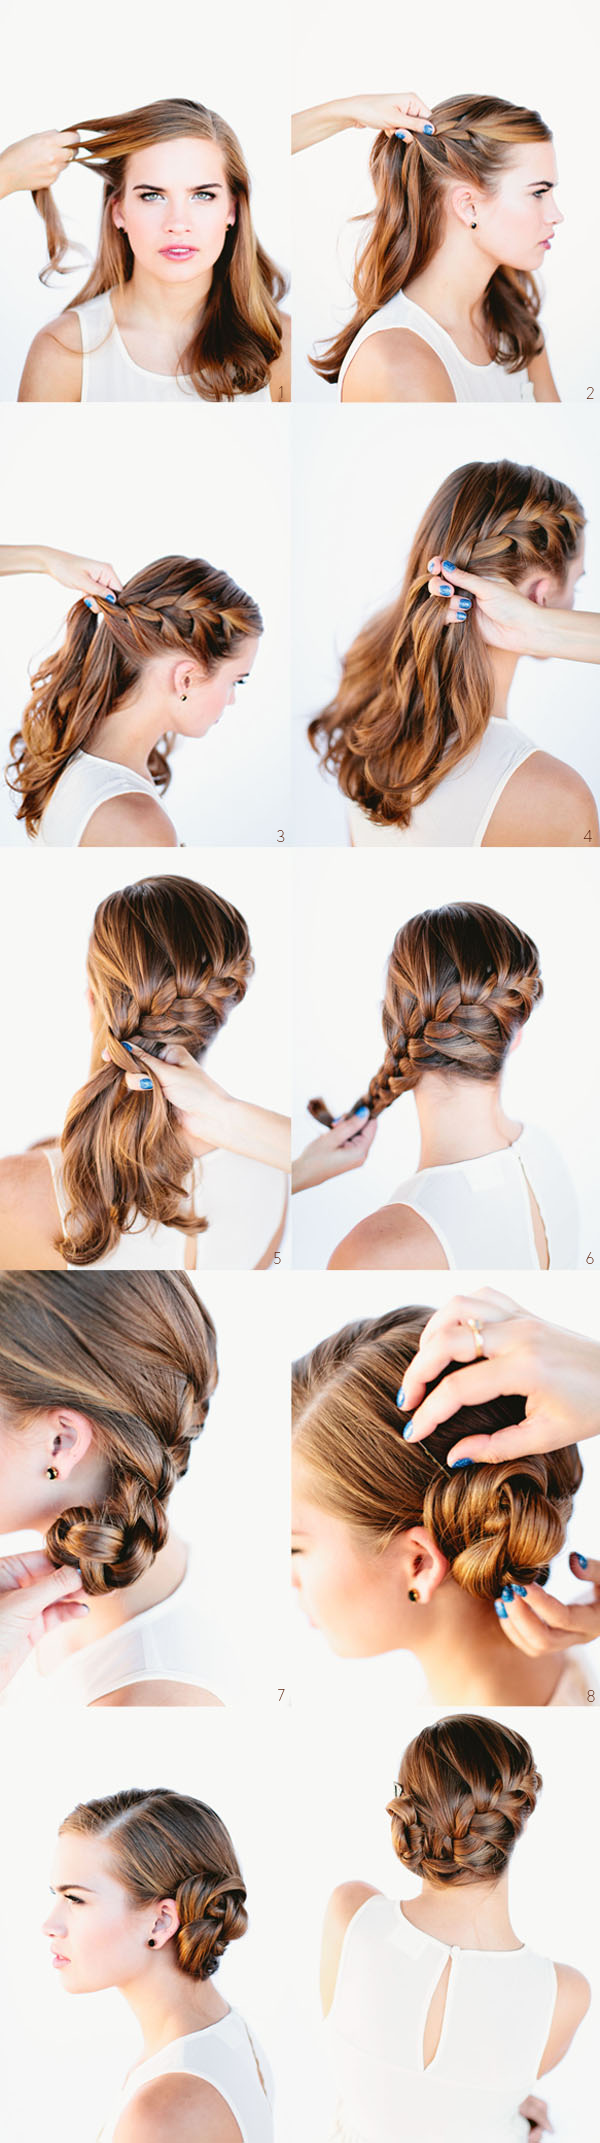 Weding updos for long hair instructions